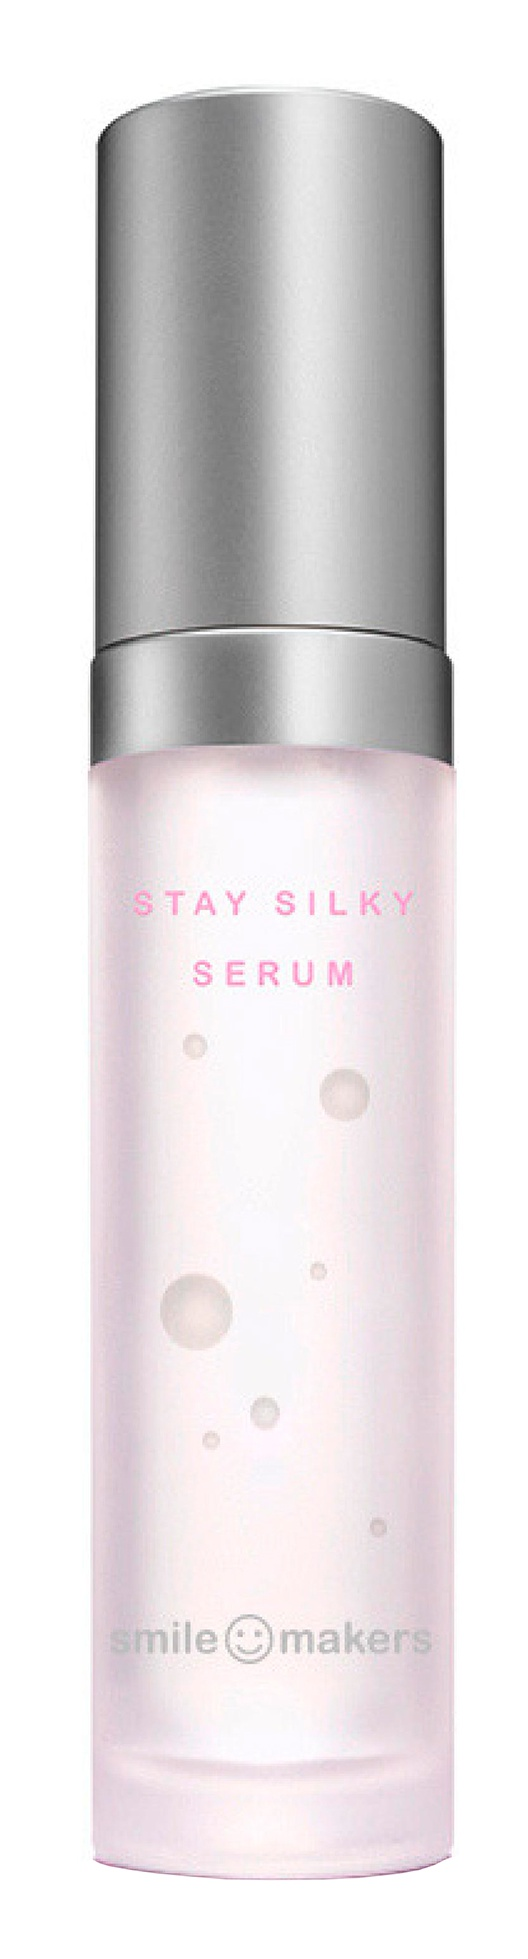 Smile Makers Stay Silky Serum Lubricant